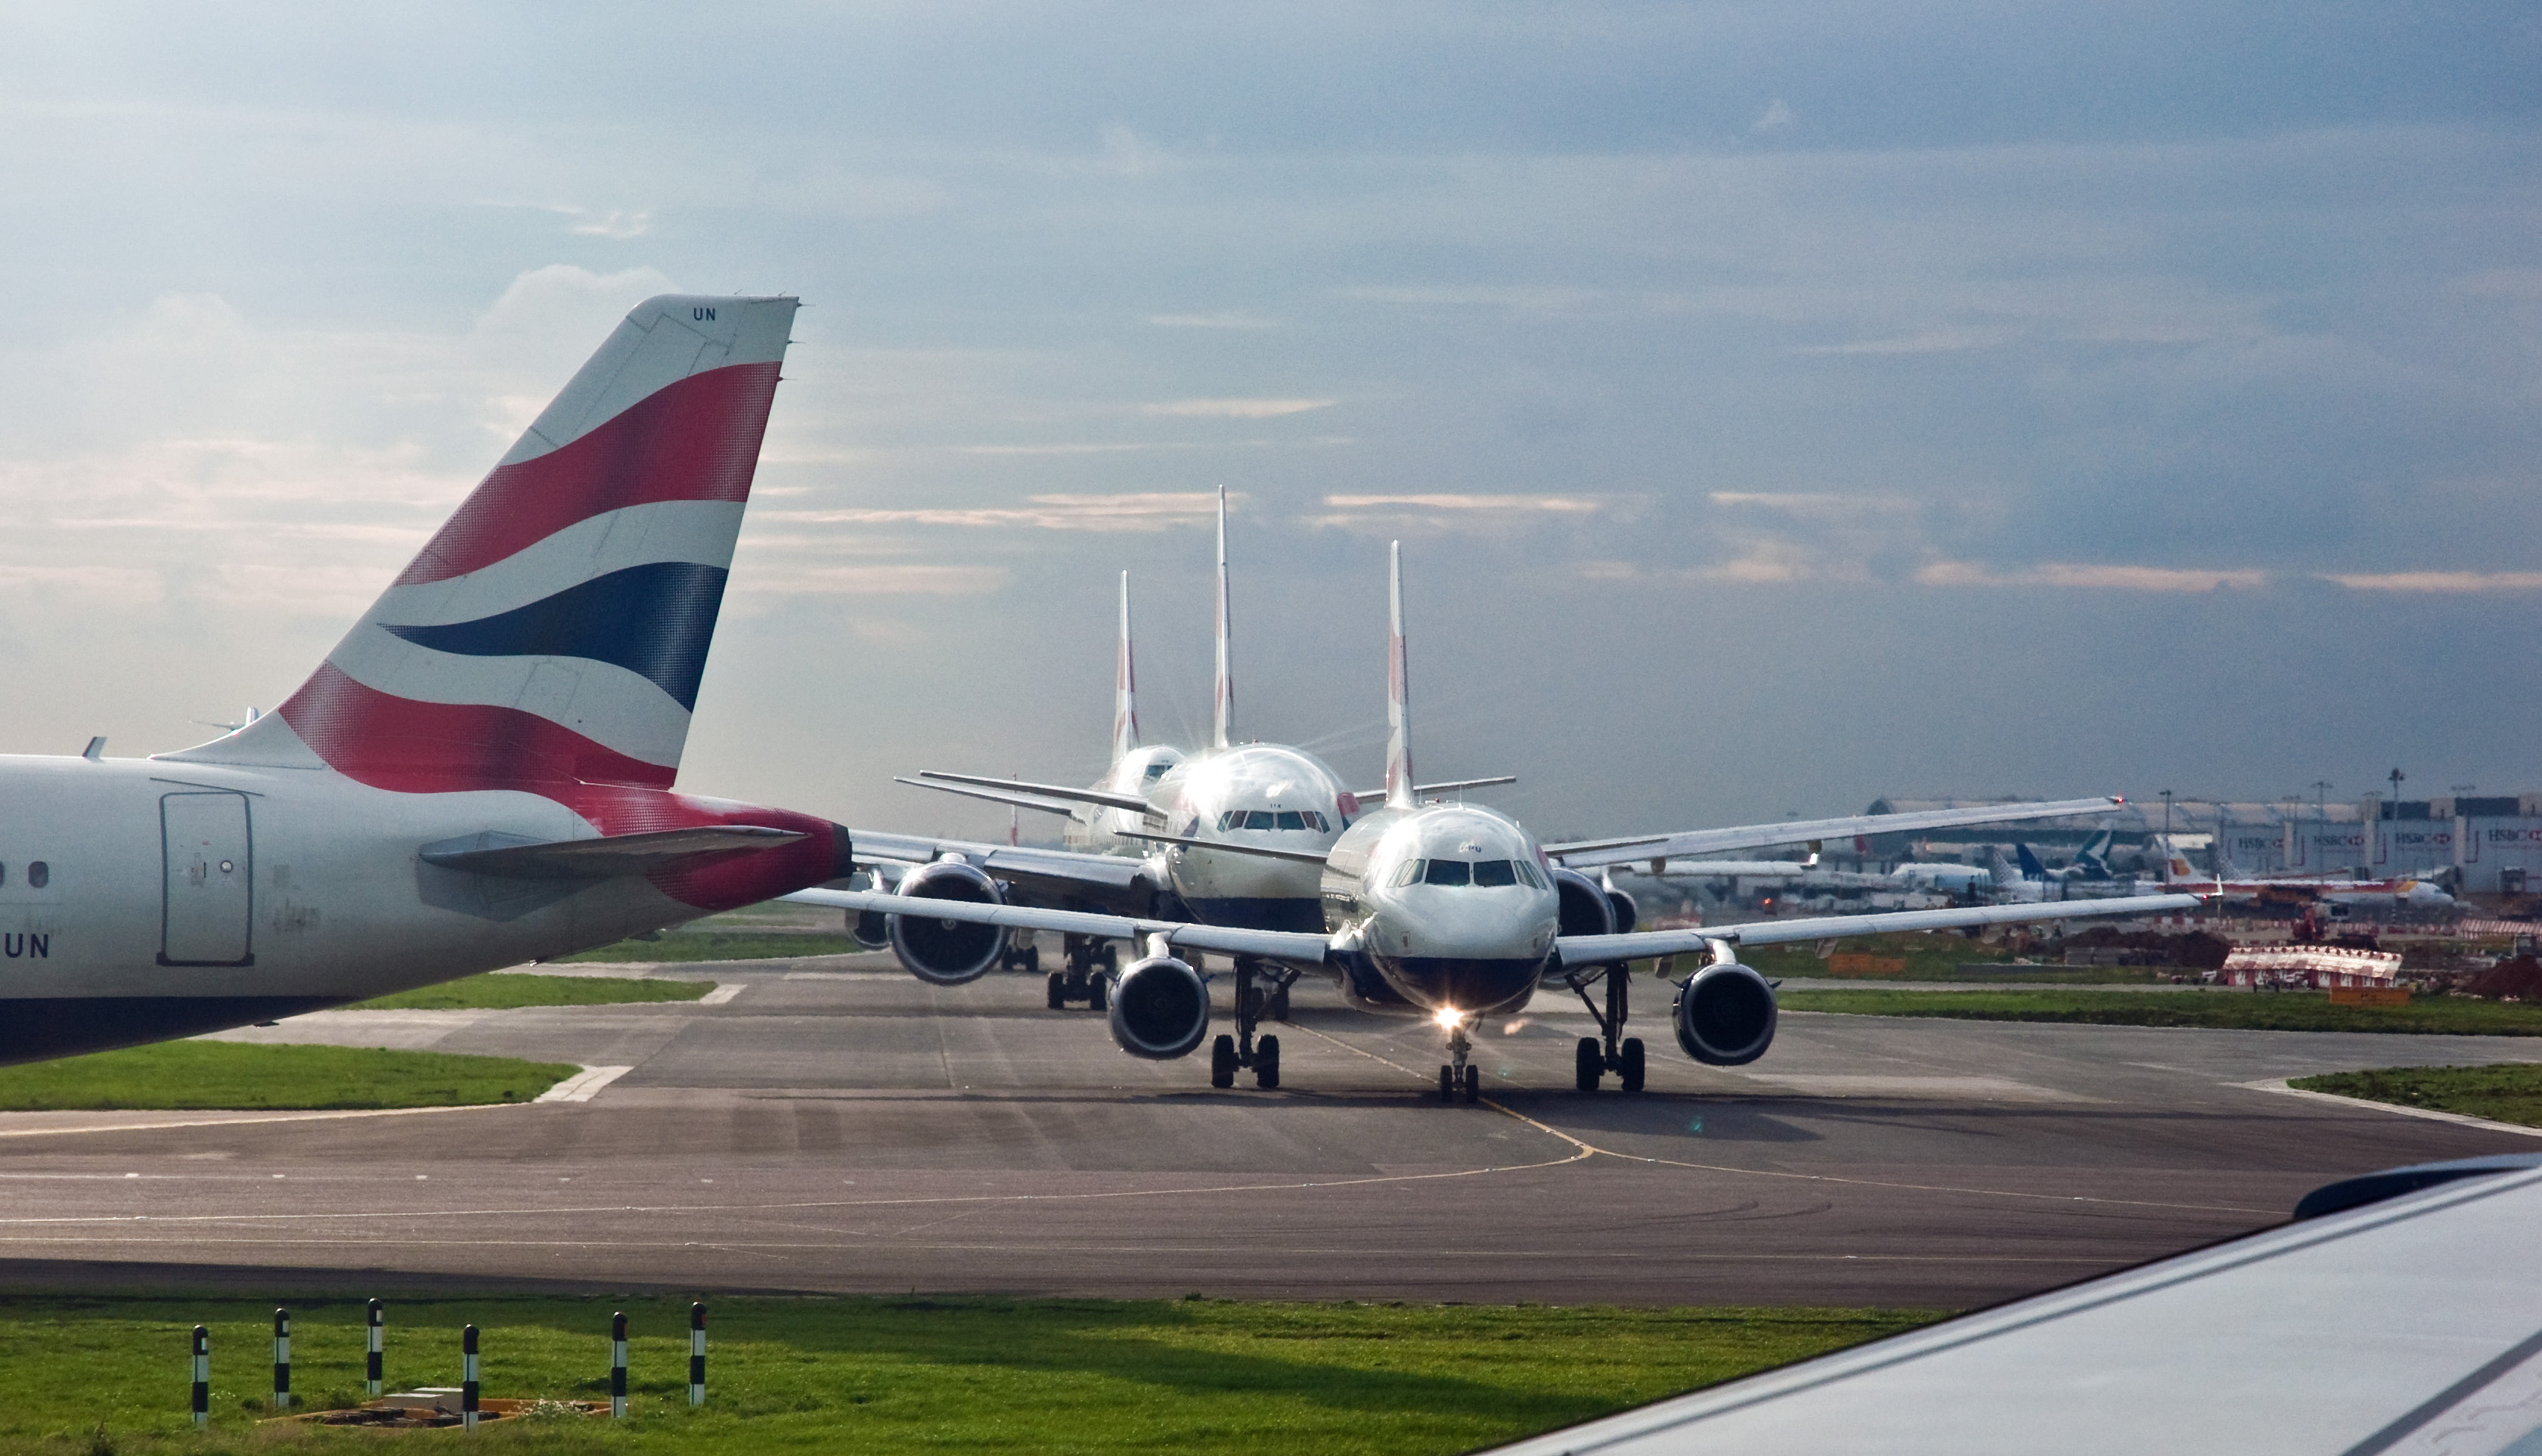 Heathrow. Photo: Flickr, Phillip Capper